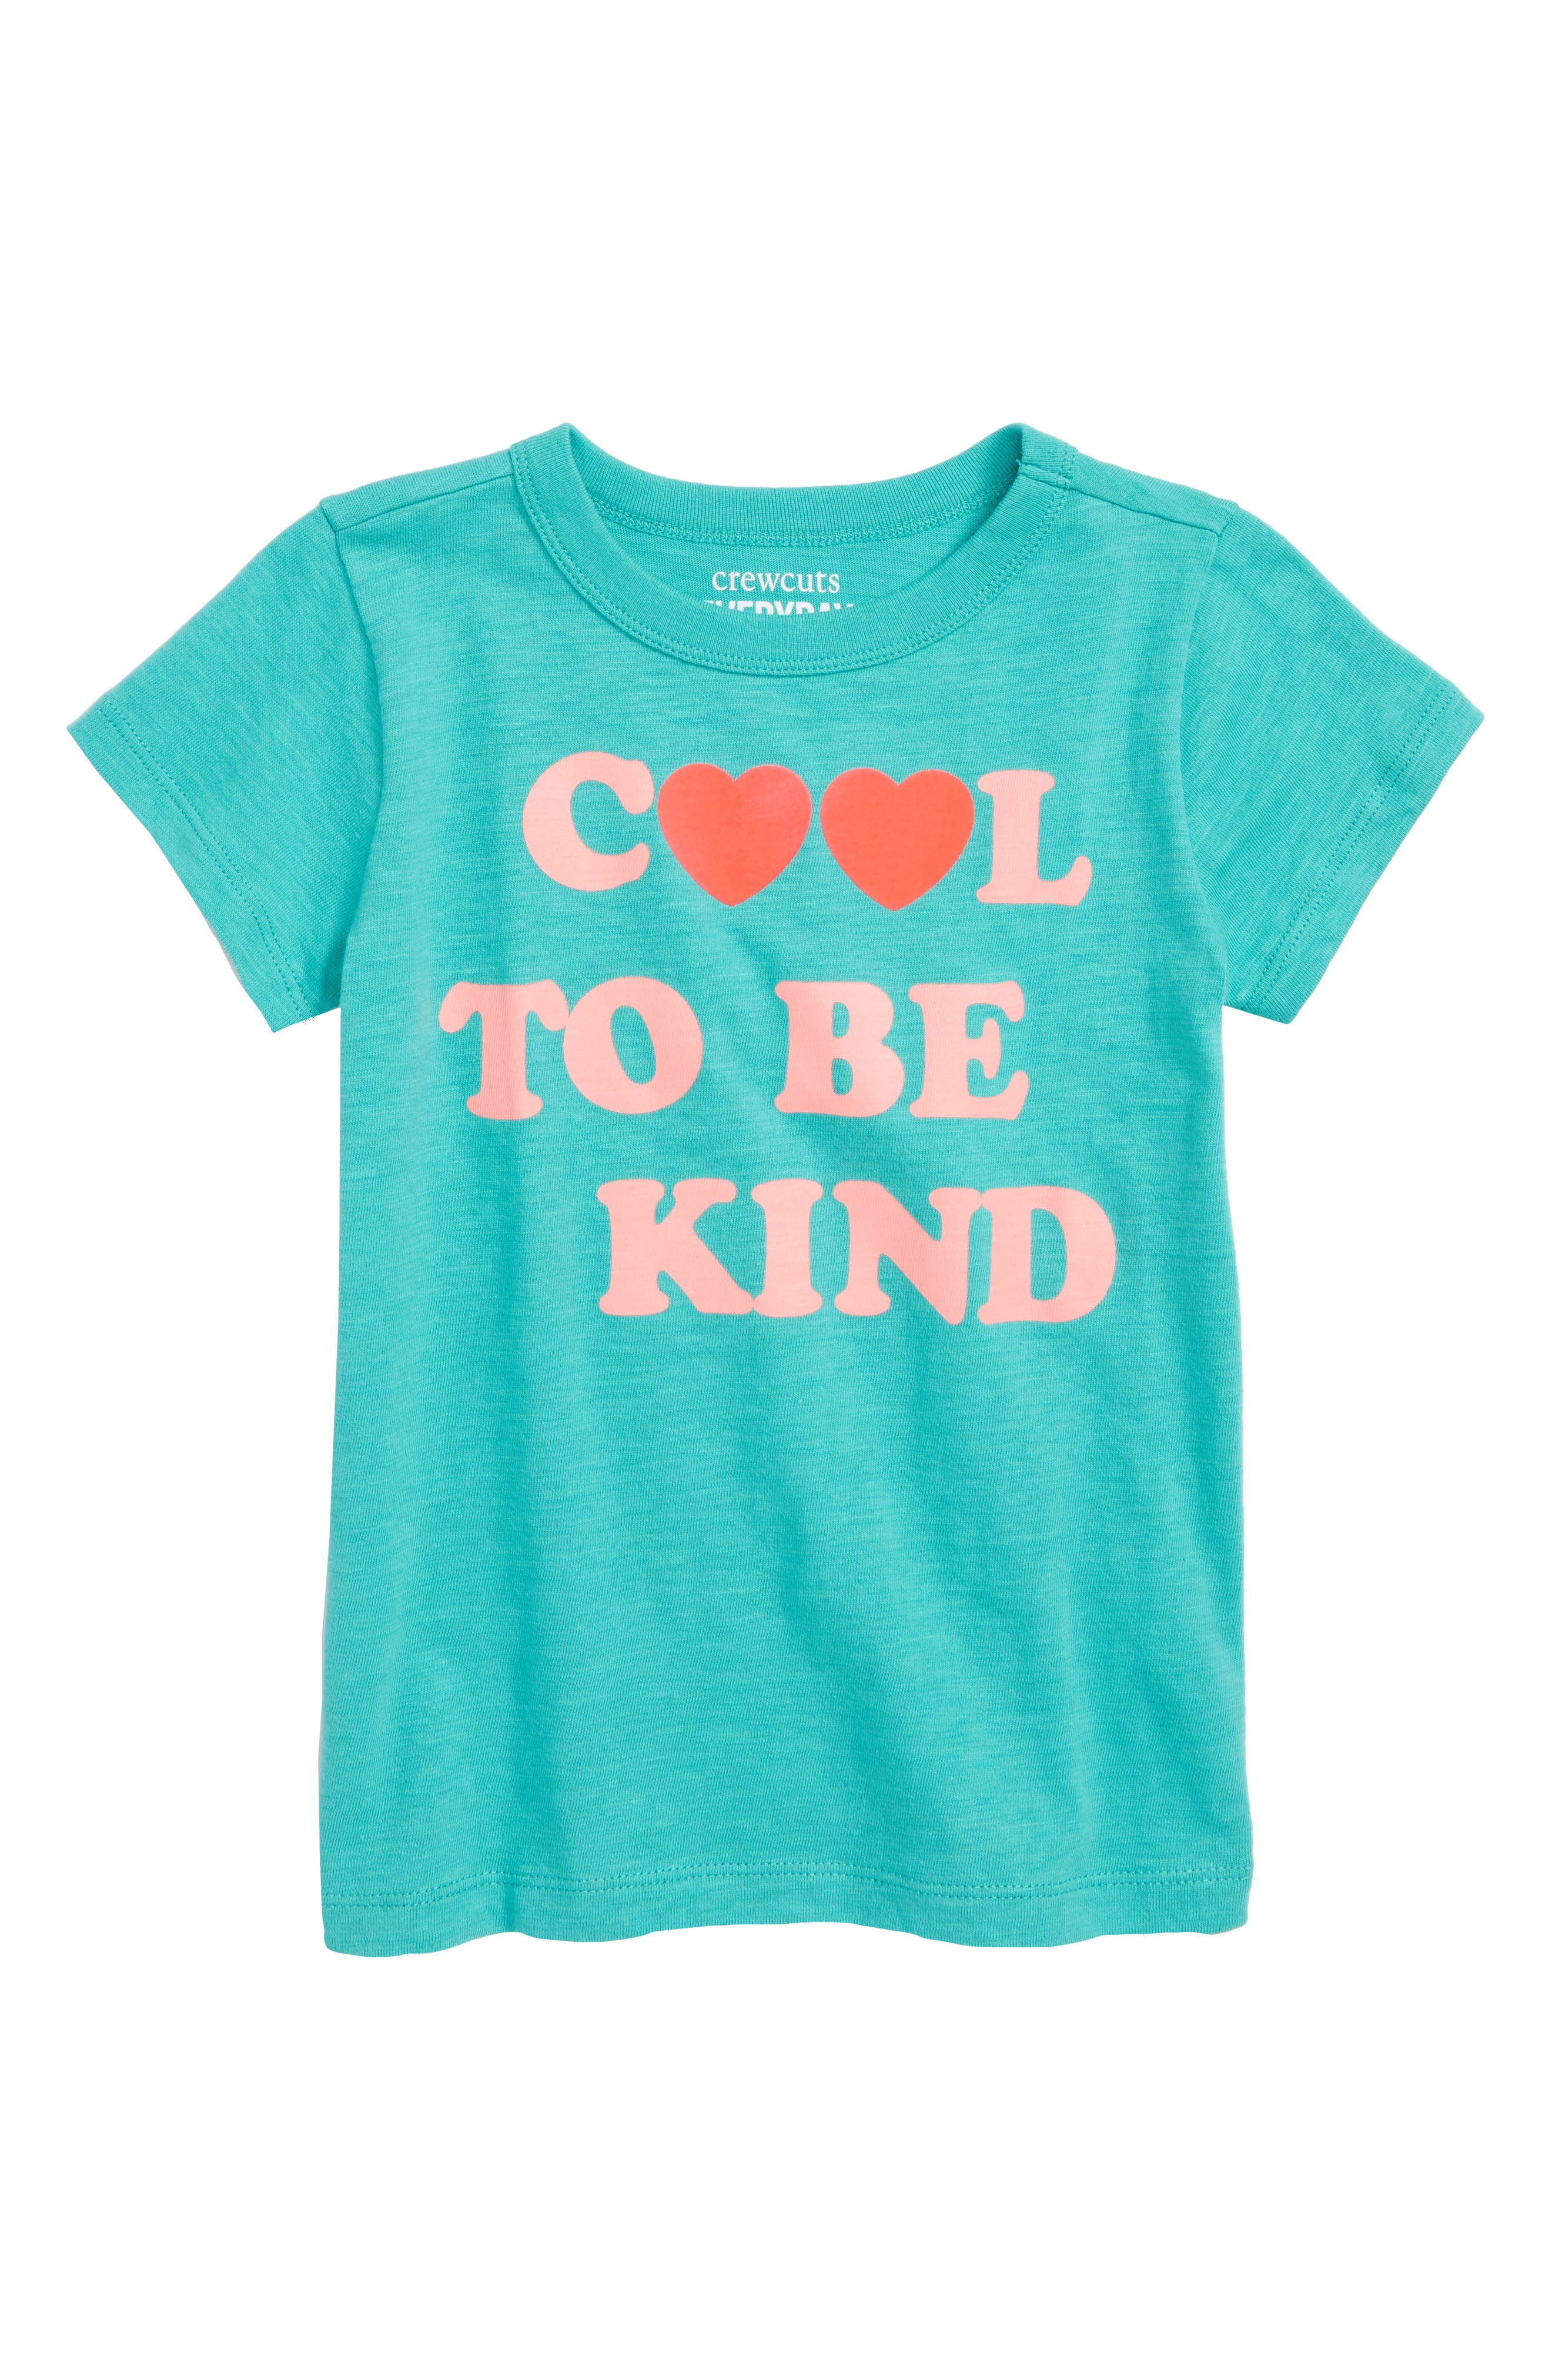 CREWCUTS BY J.CREW crewcuts by J. Crew Cool to Be Kind Graphic Tee, Main, color, 300